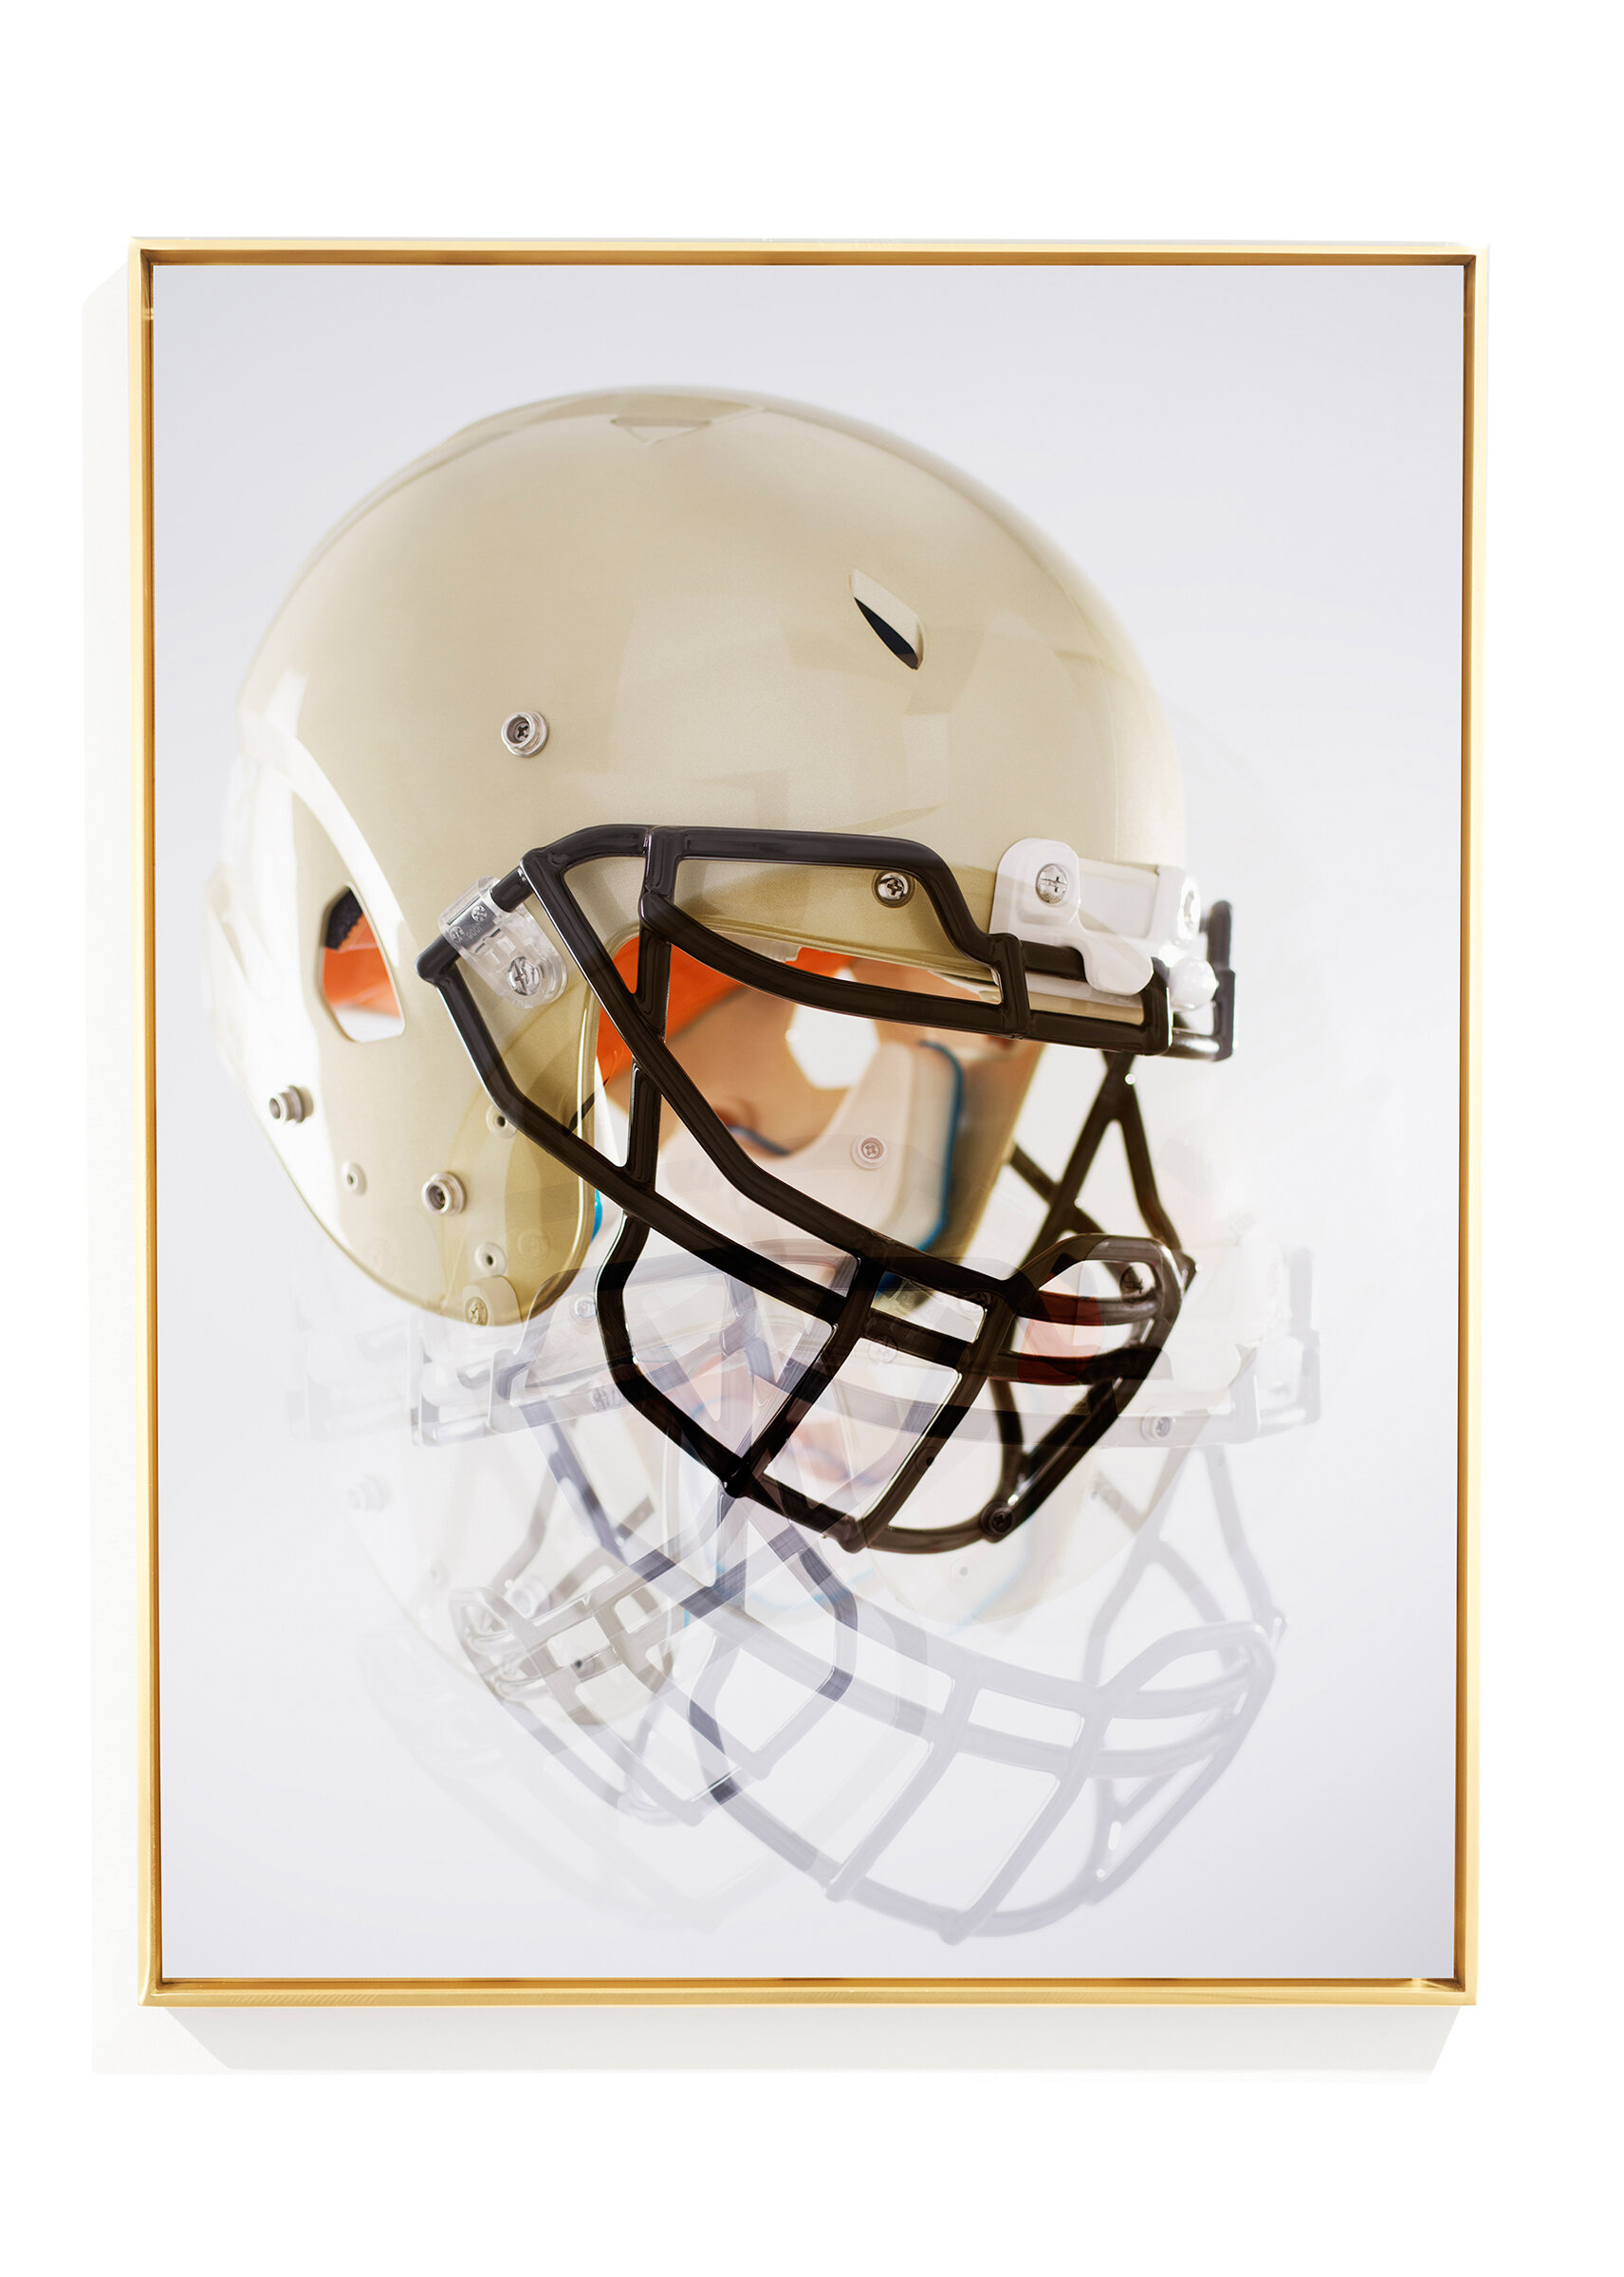 ClampArt_Joseph-Desler-Costa_GoldHelmet_2017_Dye-Sublimation-on-Aluminum-with-Polished-Brass-Frame_32x24inches-Edition-and-price-TBD.jpg